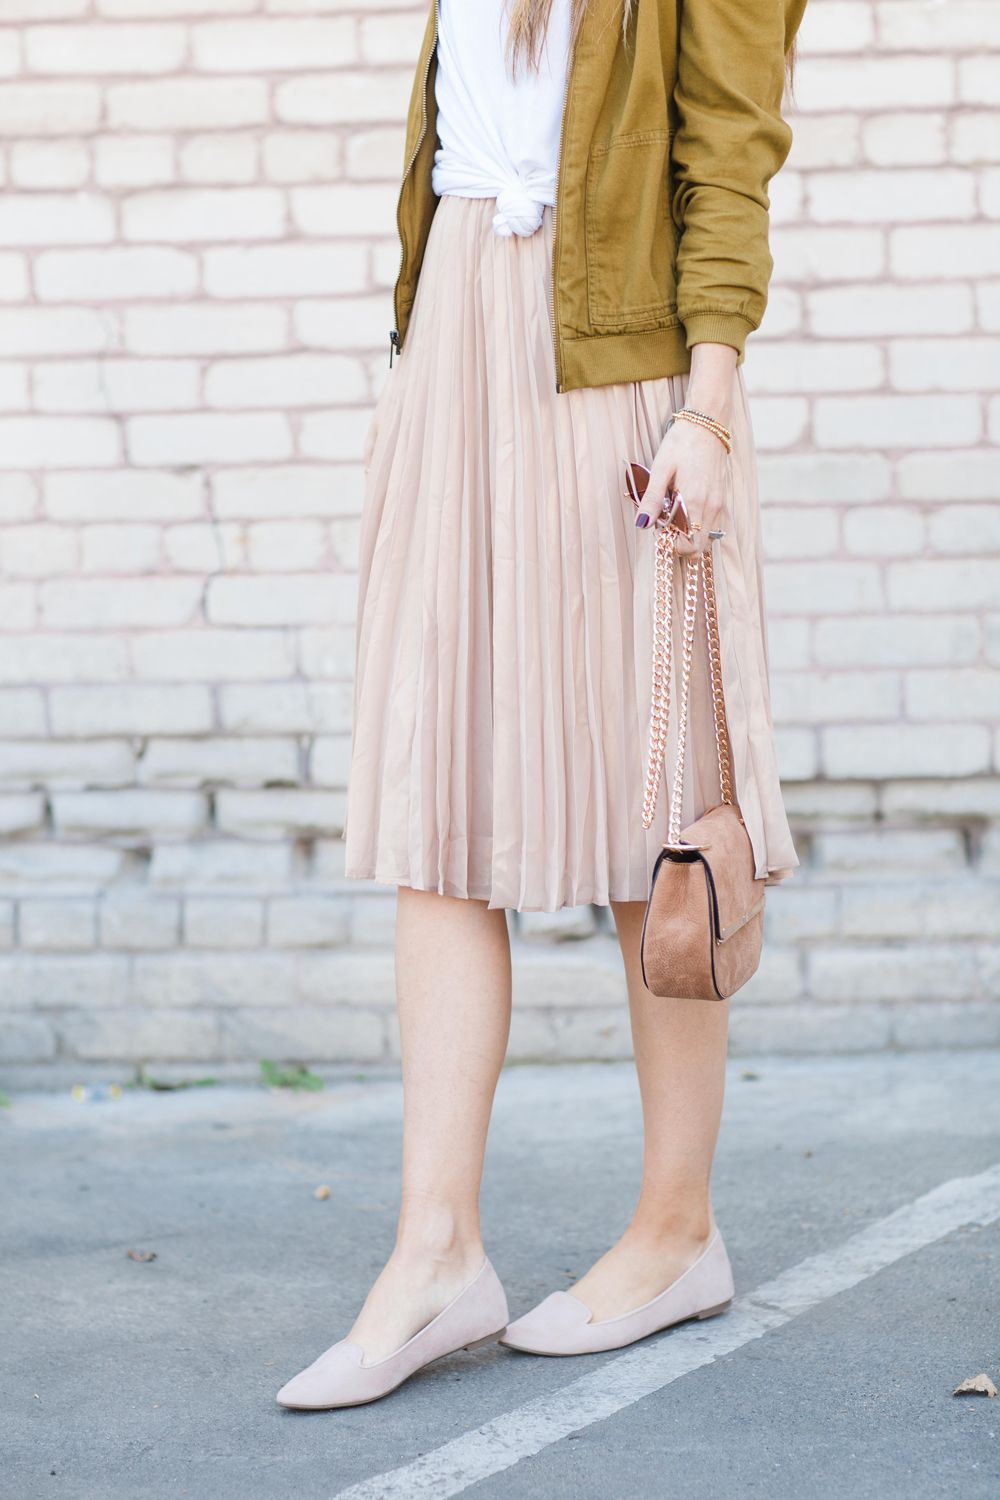 6a3c345c6a3 How to Dress Up and Dress Down a Pleated Dress